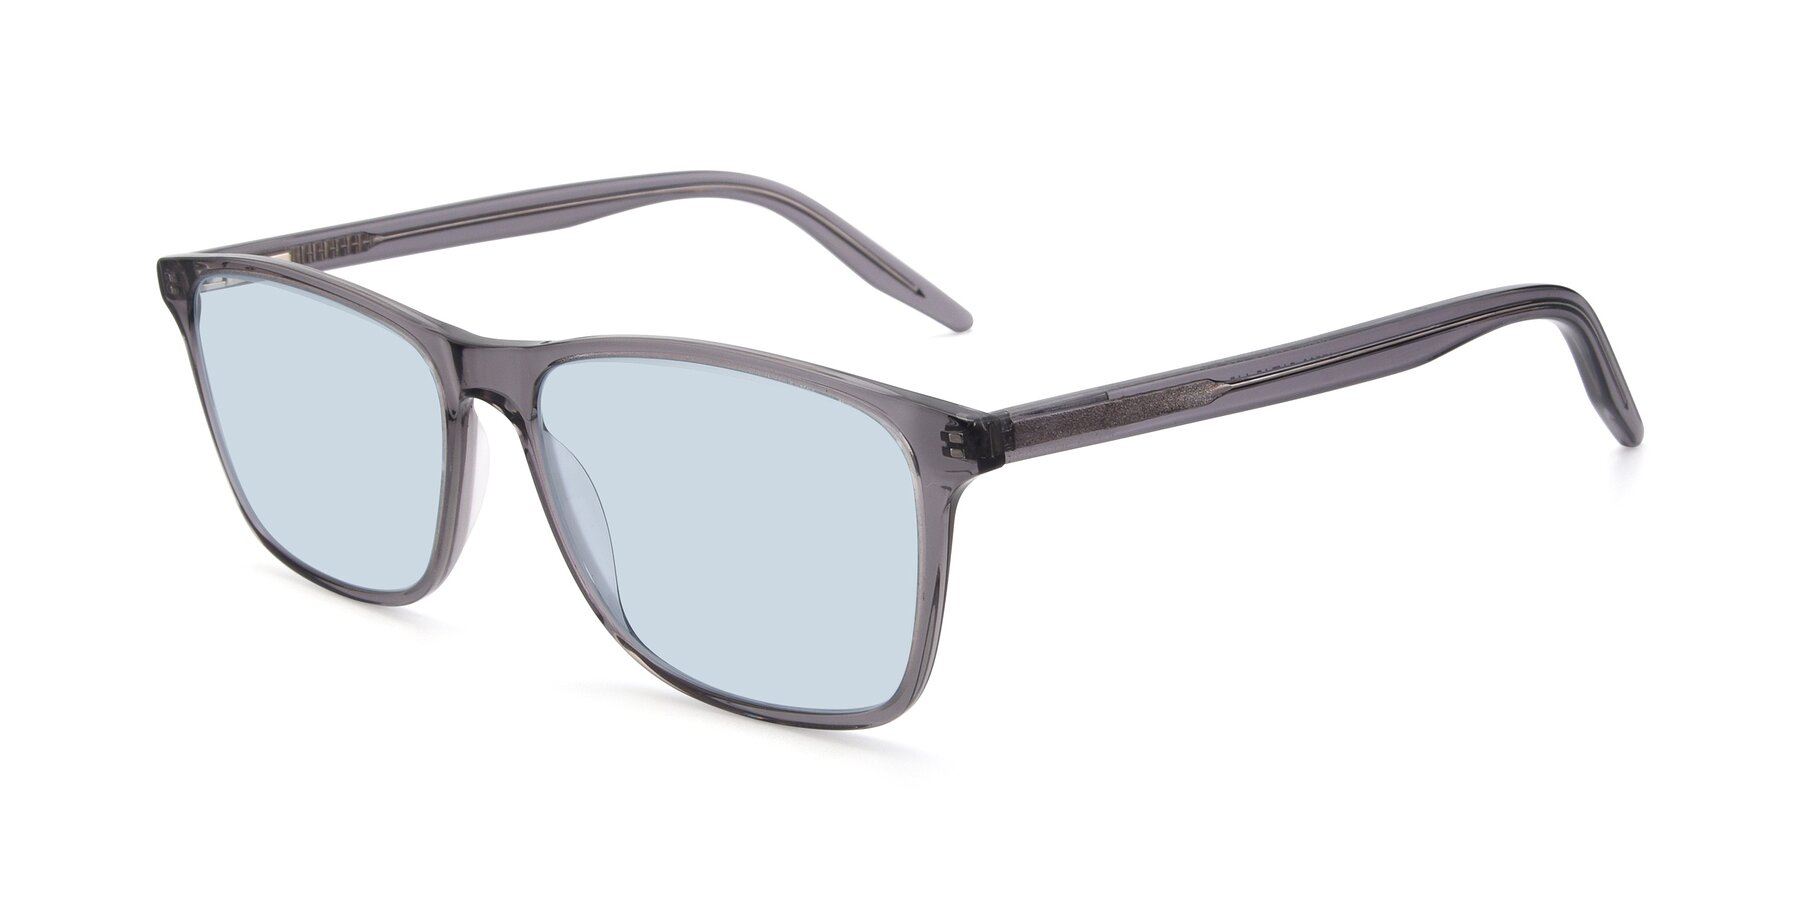 Angle of 17500 in Transparent Grey with Light Blue Tinted Lenses